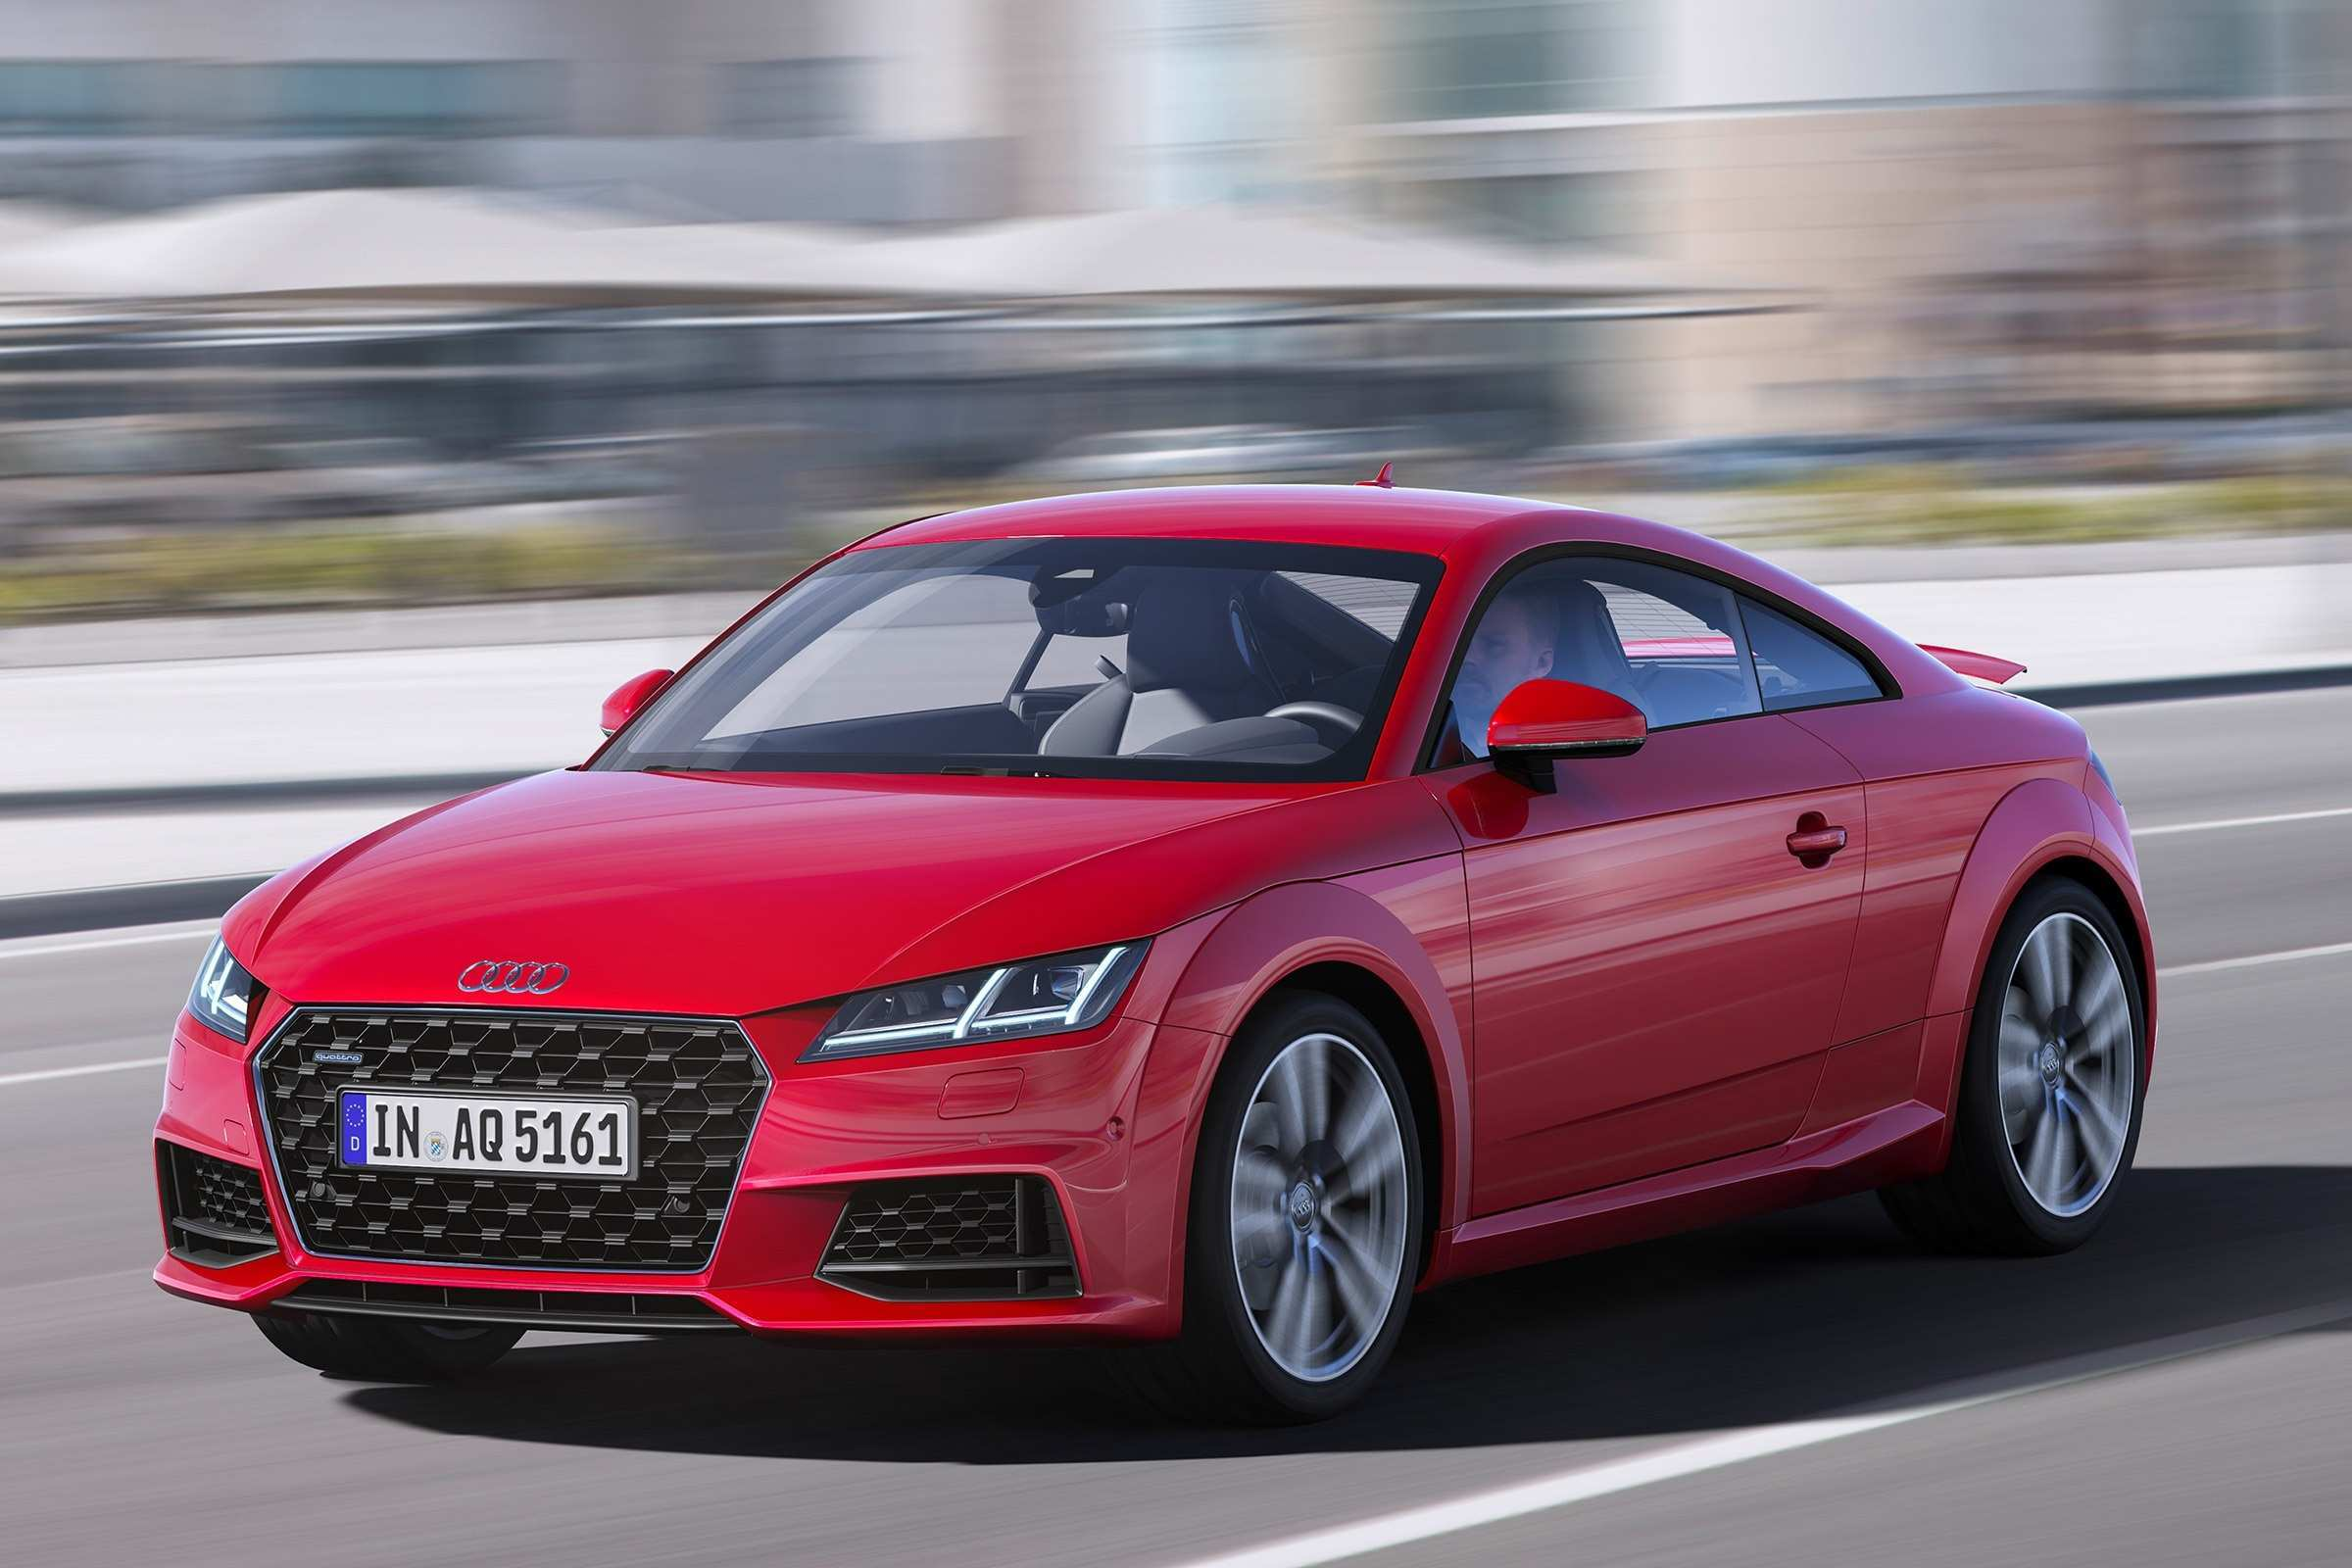 52 The New 2019 Audi Vehicles Redesign And Price Performance with New 2019 Audi Vehicles Redesign And Price